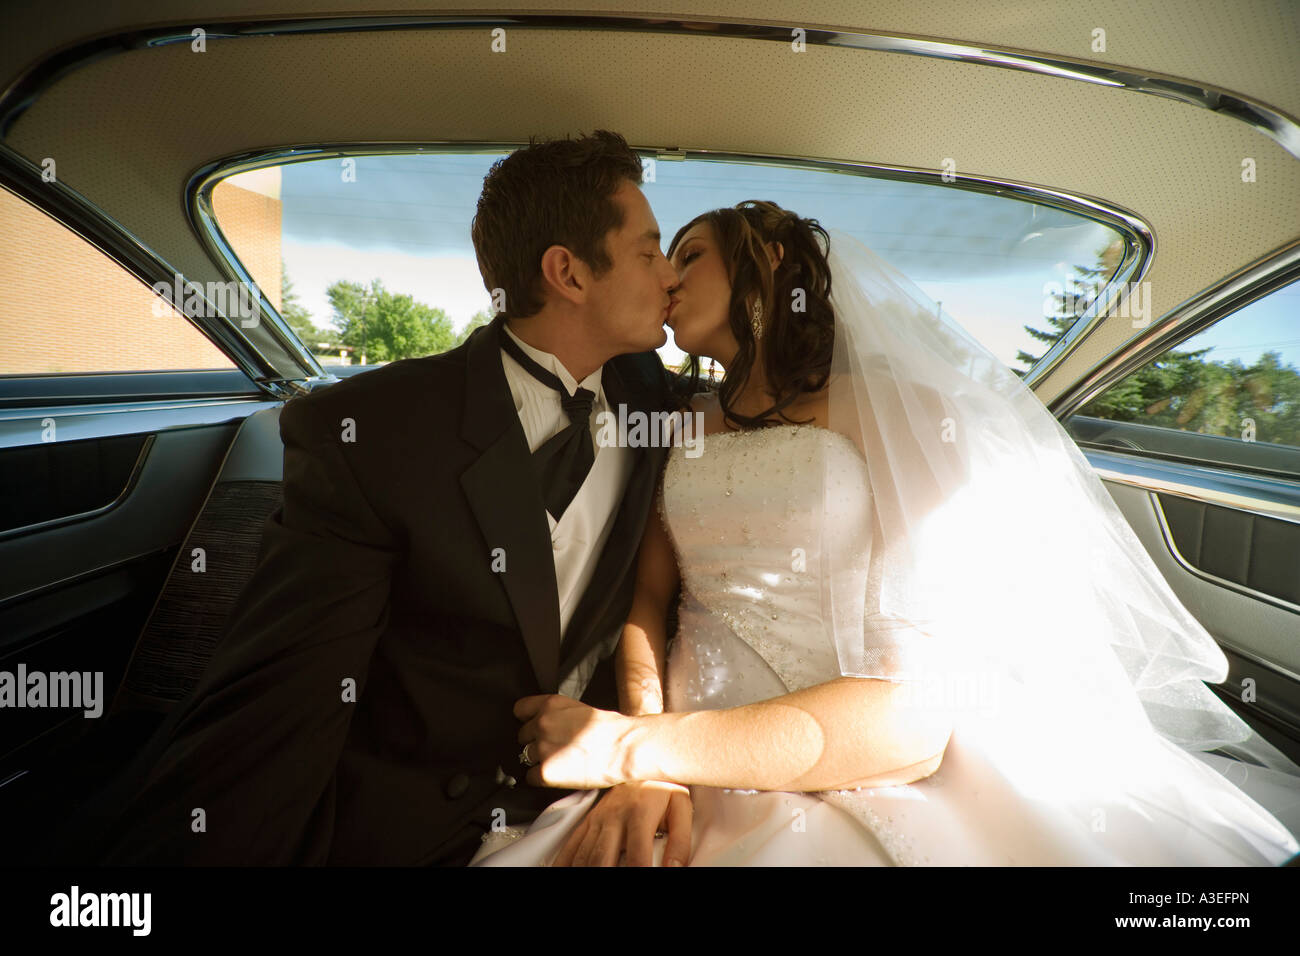 Bride and groom kissing in the backseat